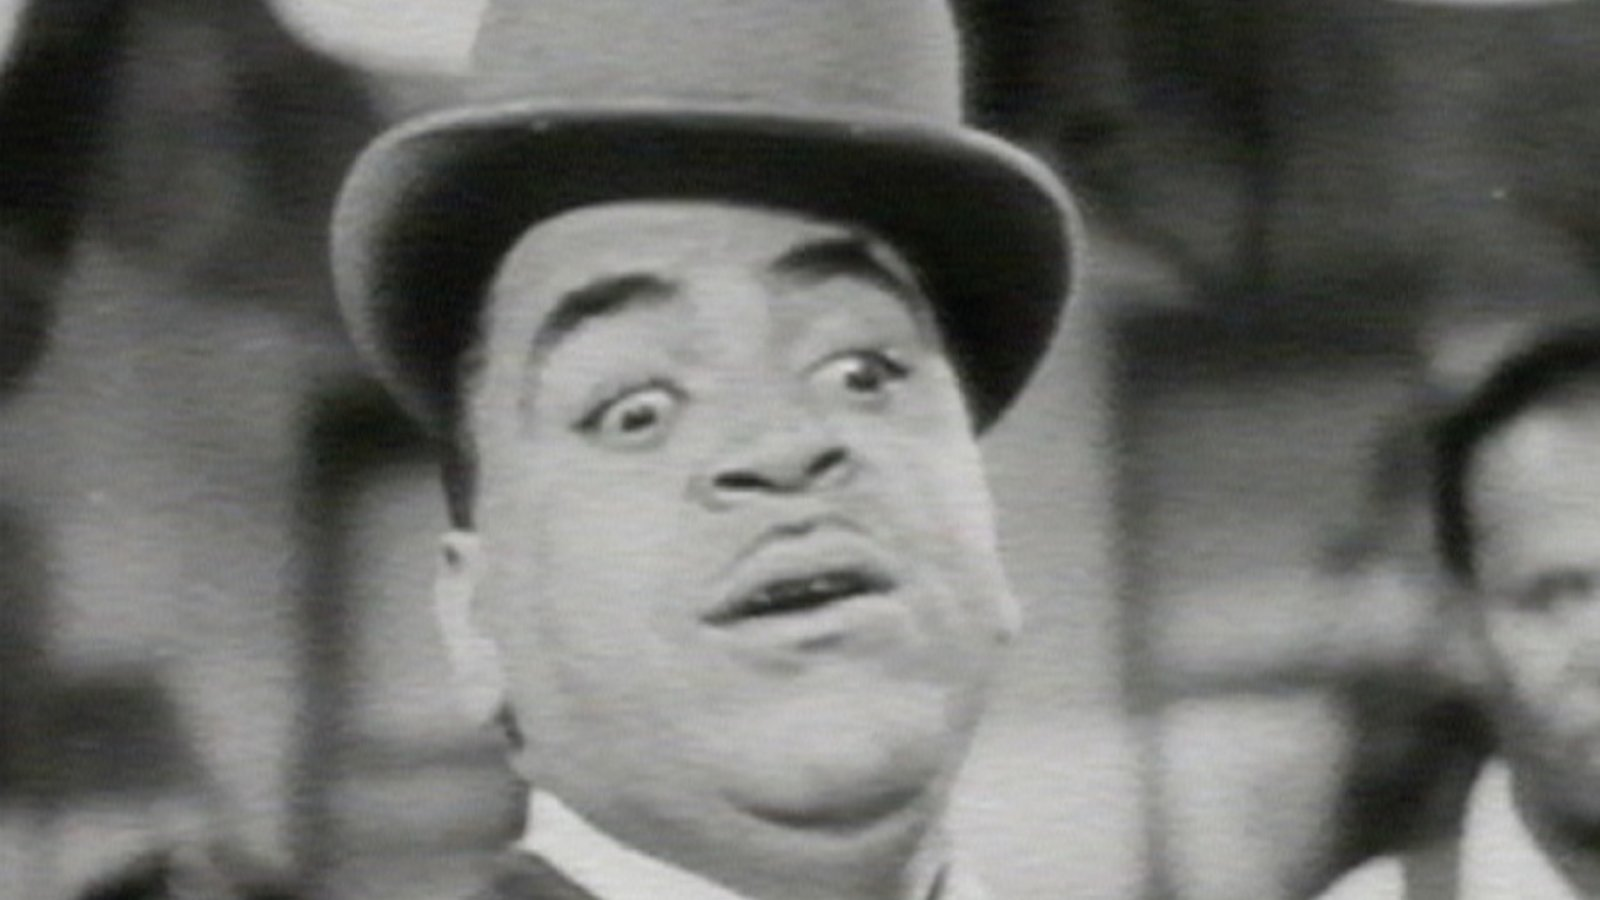 This Joint Is Jumpin' - Jazz Musician Fats Waller